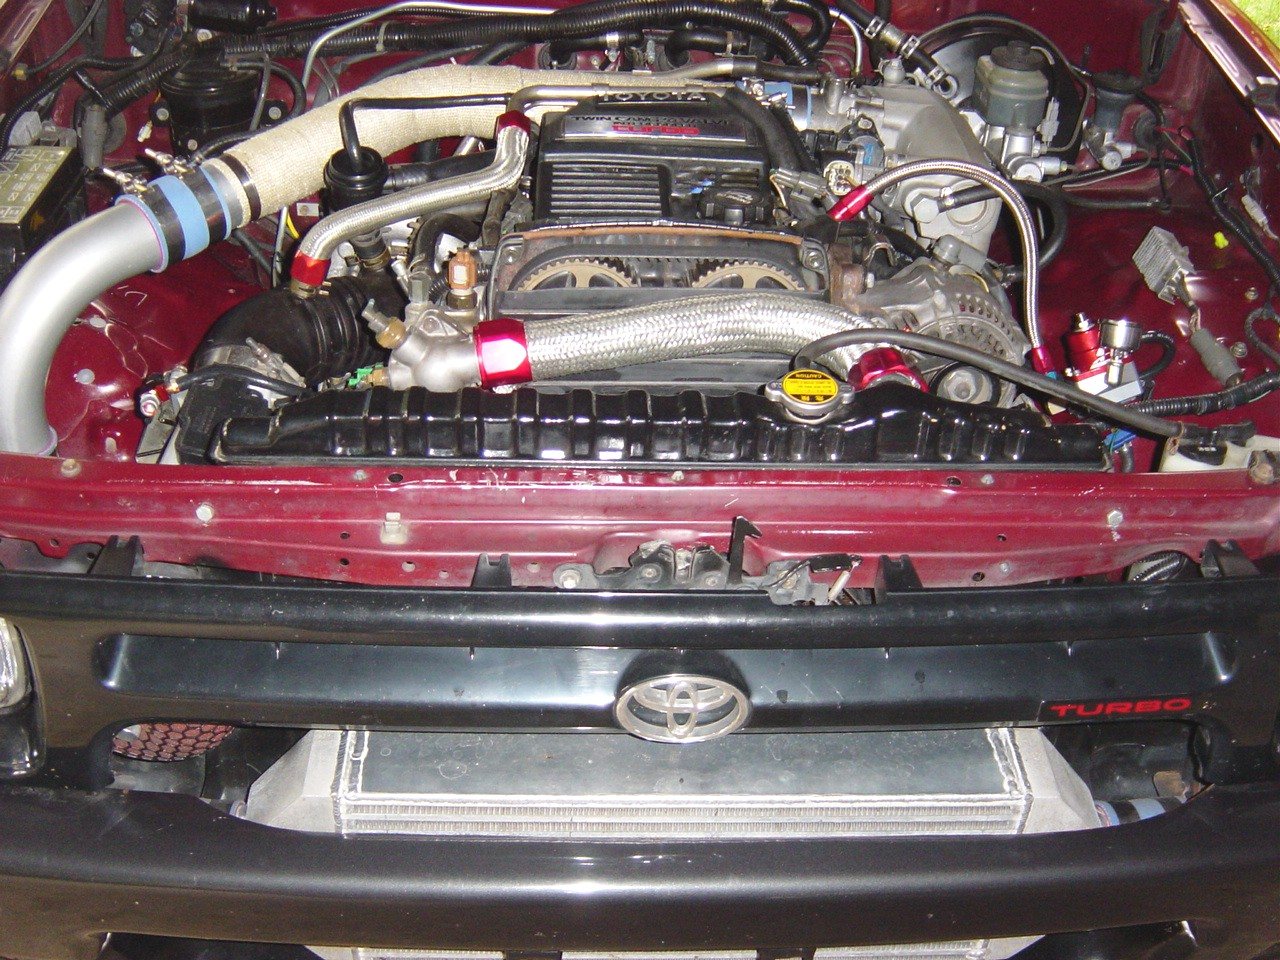 toyota 22r crate engines with Ford V Engine Ebay Engines Problems And Solutions Crate on 22r 22re 20r Re Manufactured Engines additionally Toyota 22re Pictures besides High Performance 22r Engines besides 4 6 Co Crate Engine also .